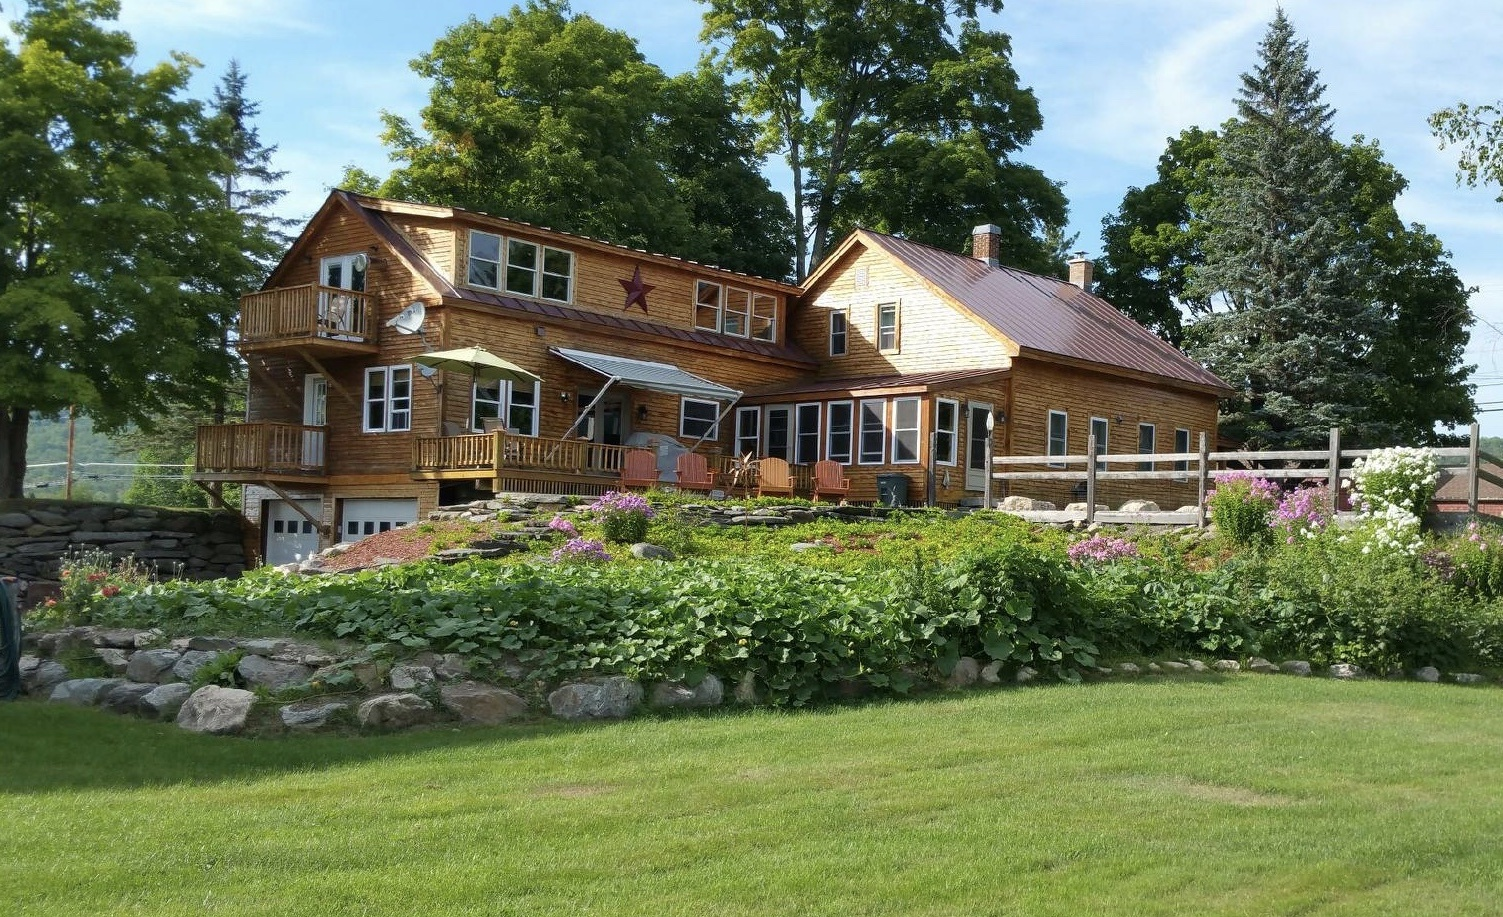 Single Family Home for Sale at 198 River, Underhill Underhill, Vermont, 05489 United States